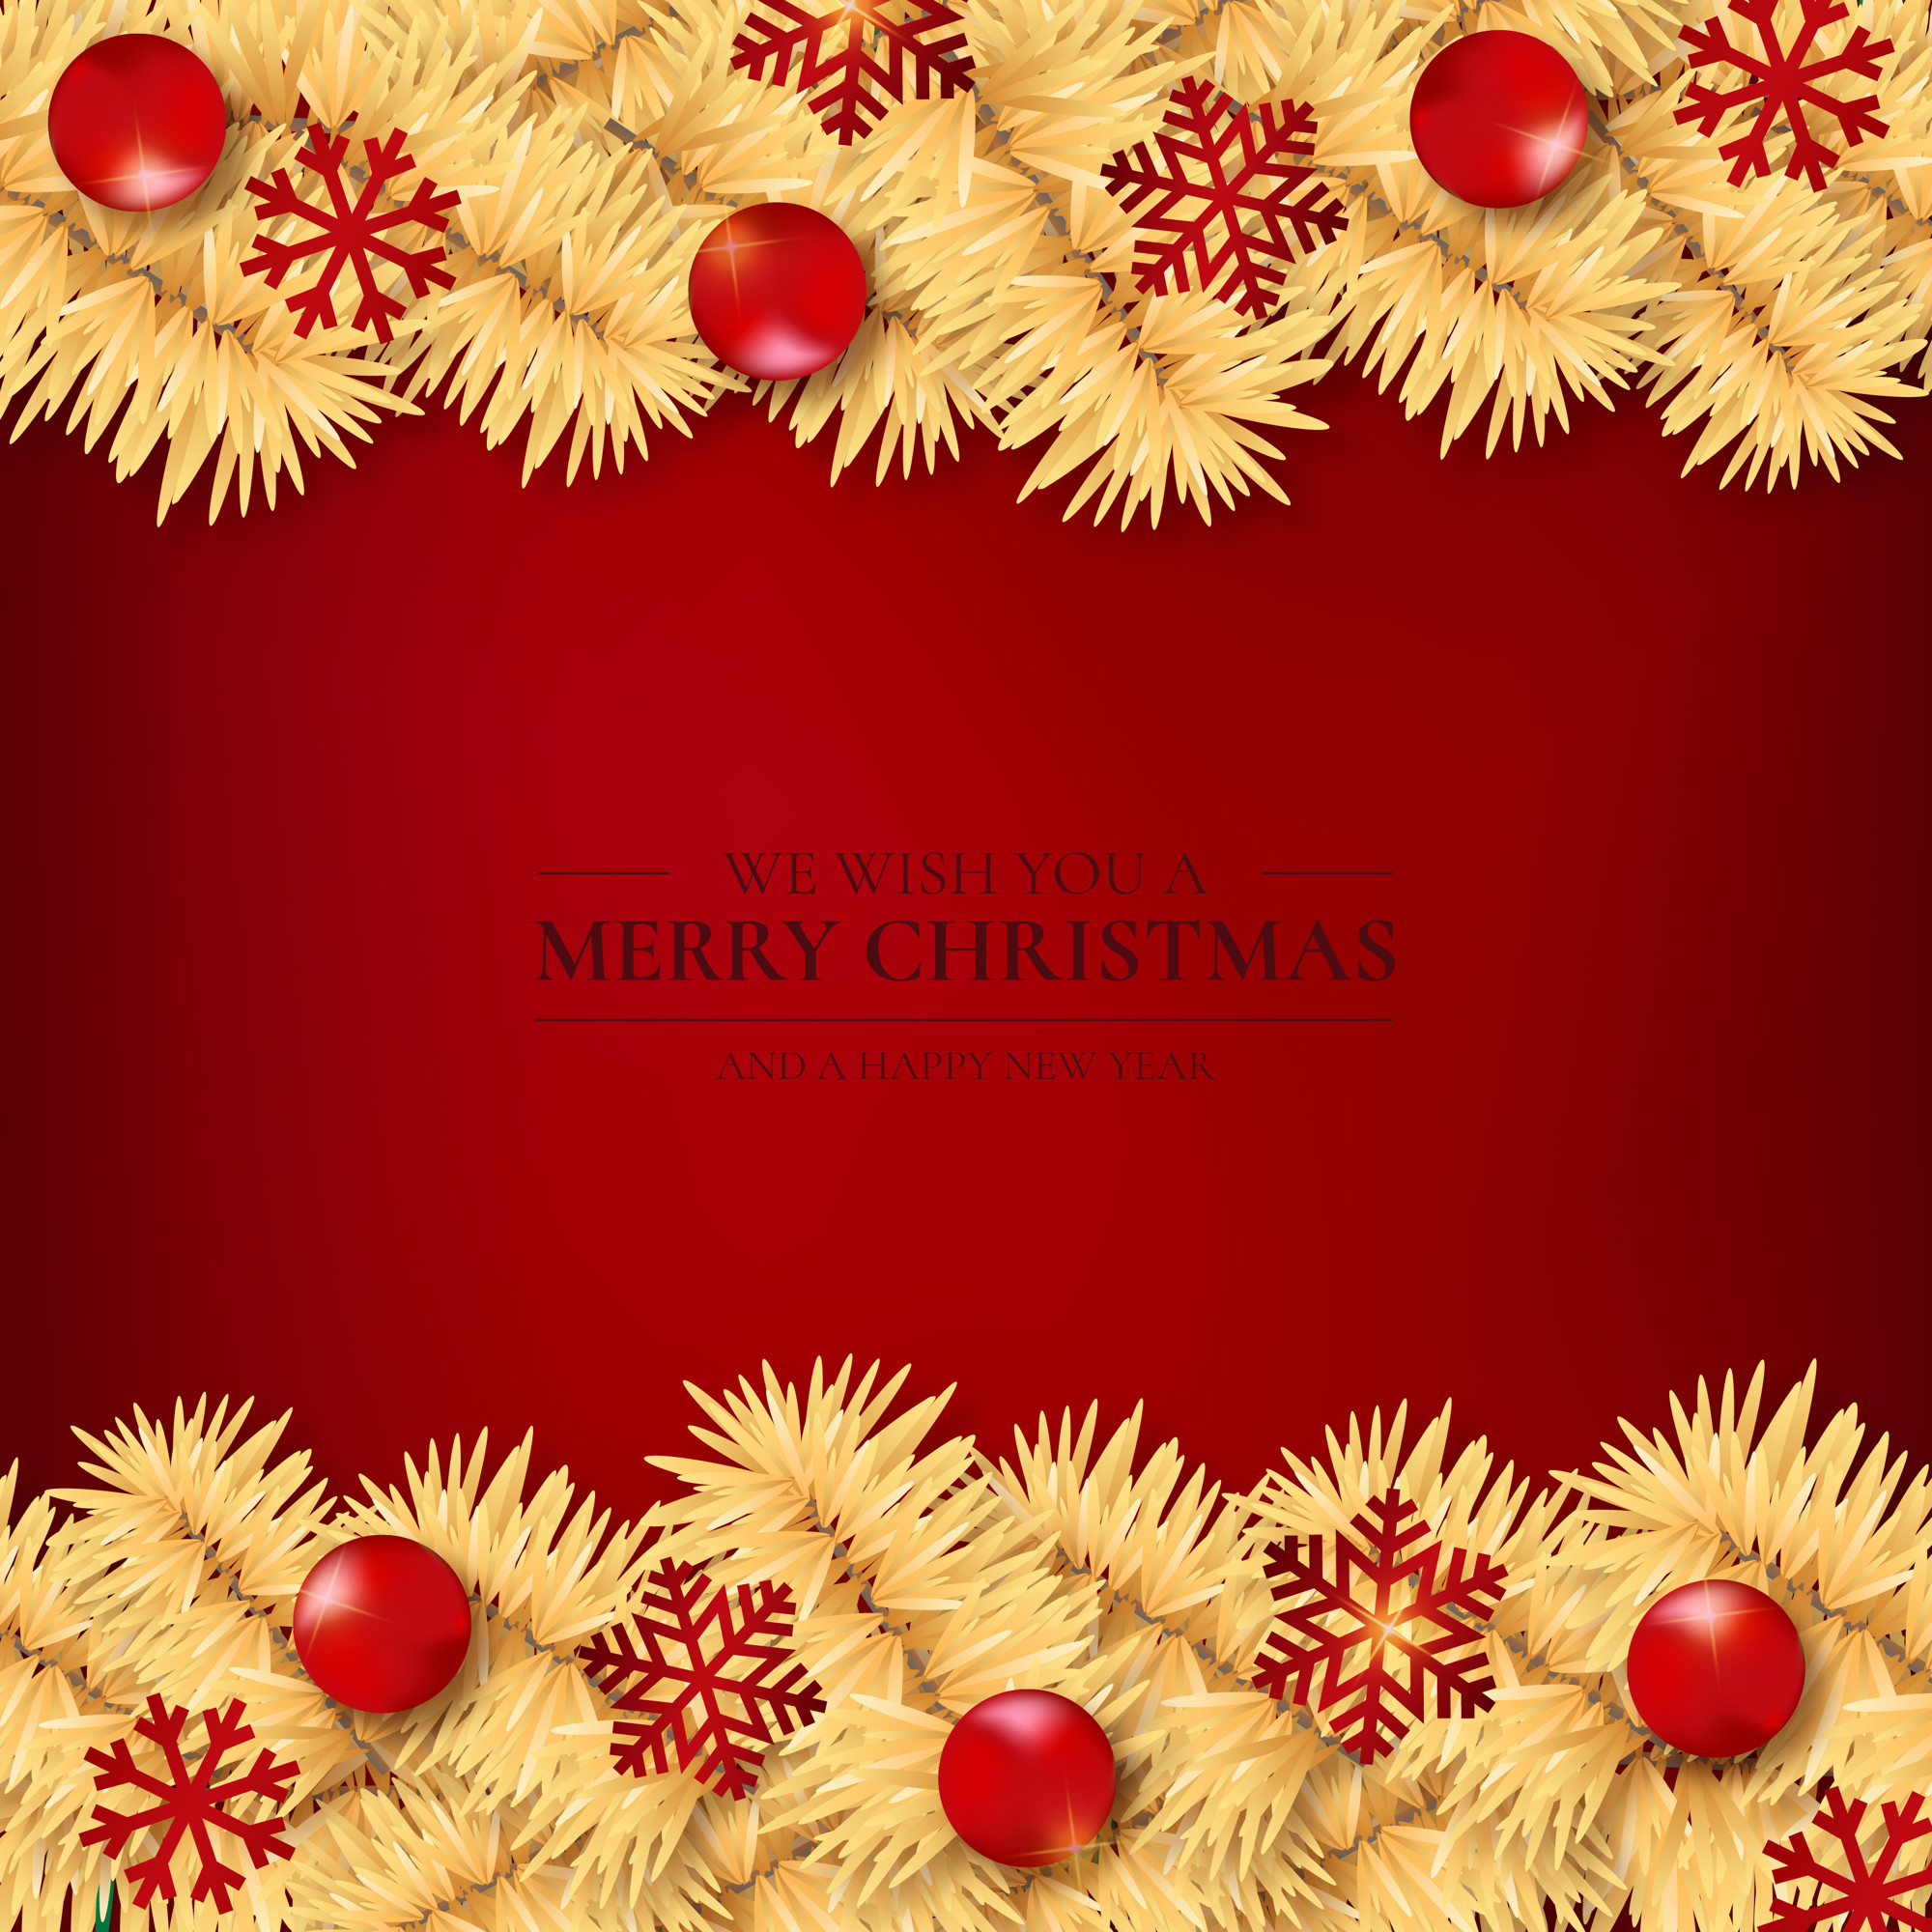 Red Background with Golden Christmas Tree Branches